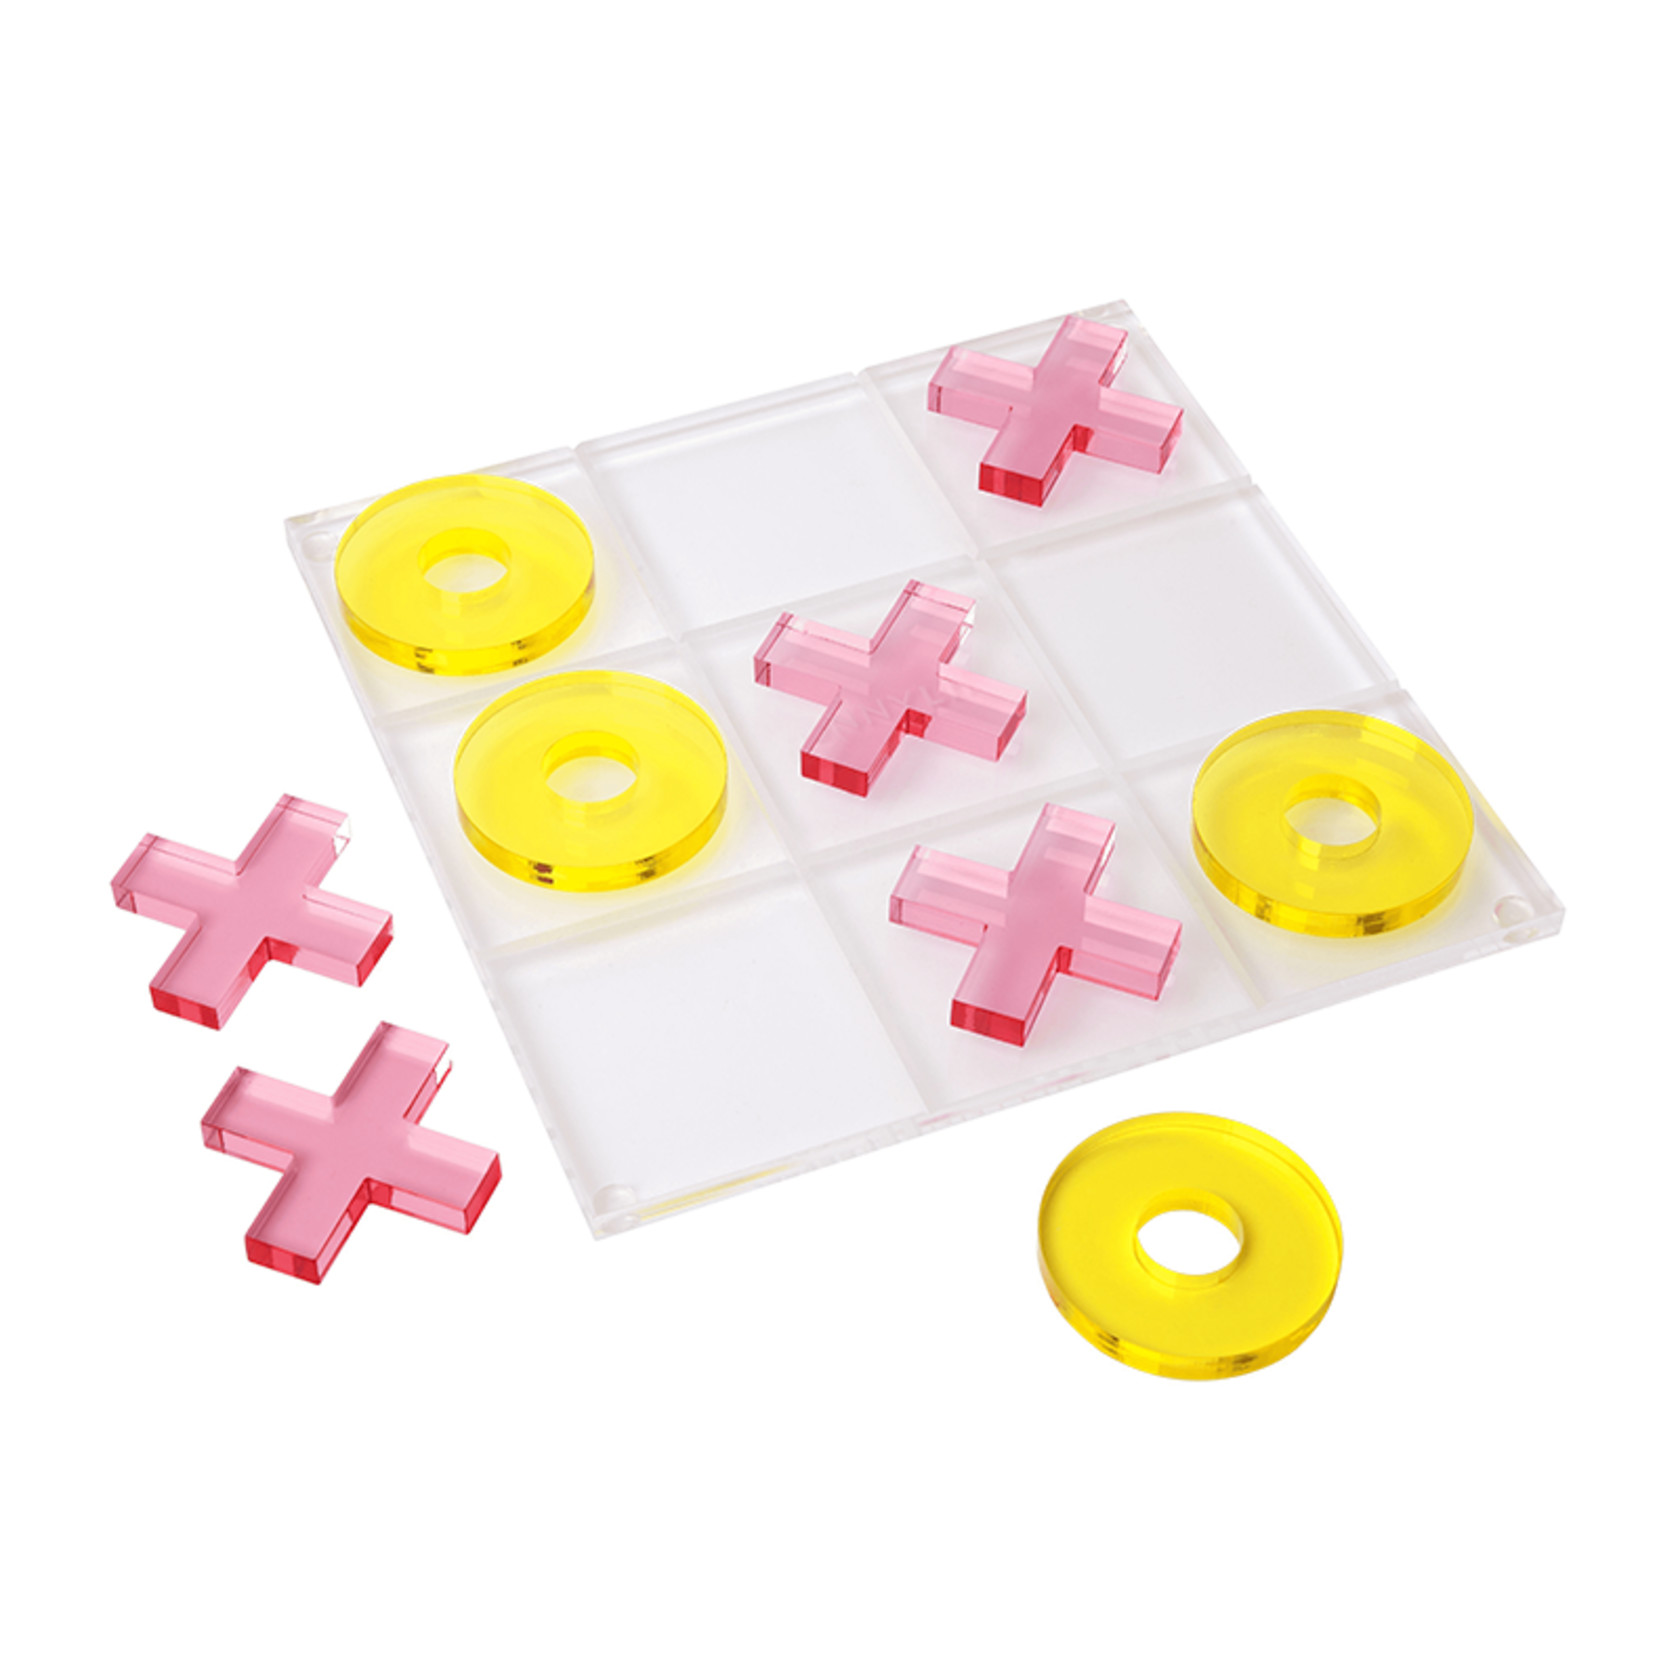 Sunnylife lucite tic tac toe game